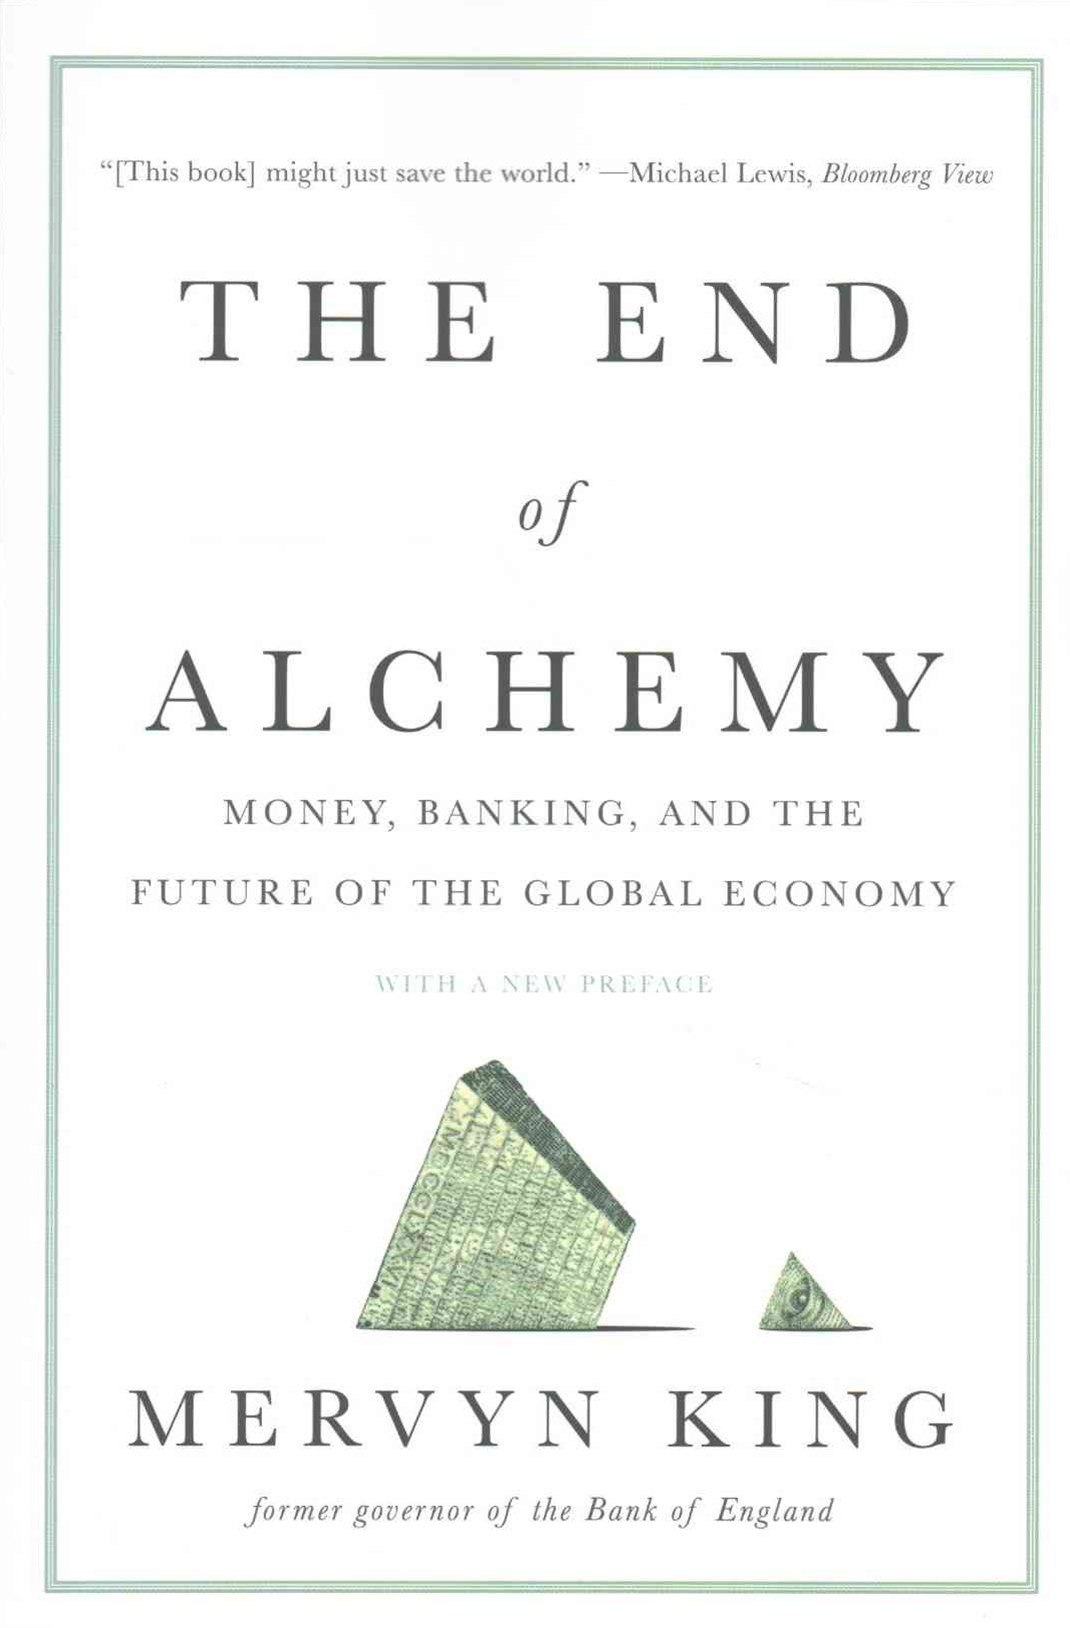 End of Alchemy - Money, Banking, and the Future of the Global Economy